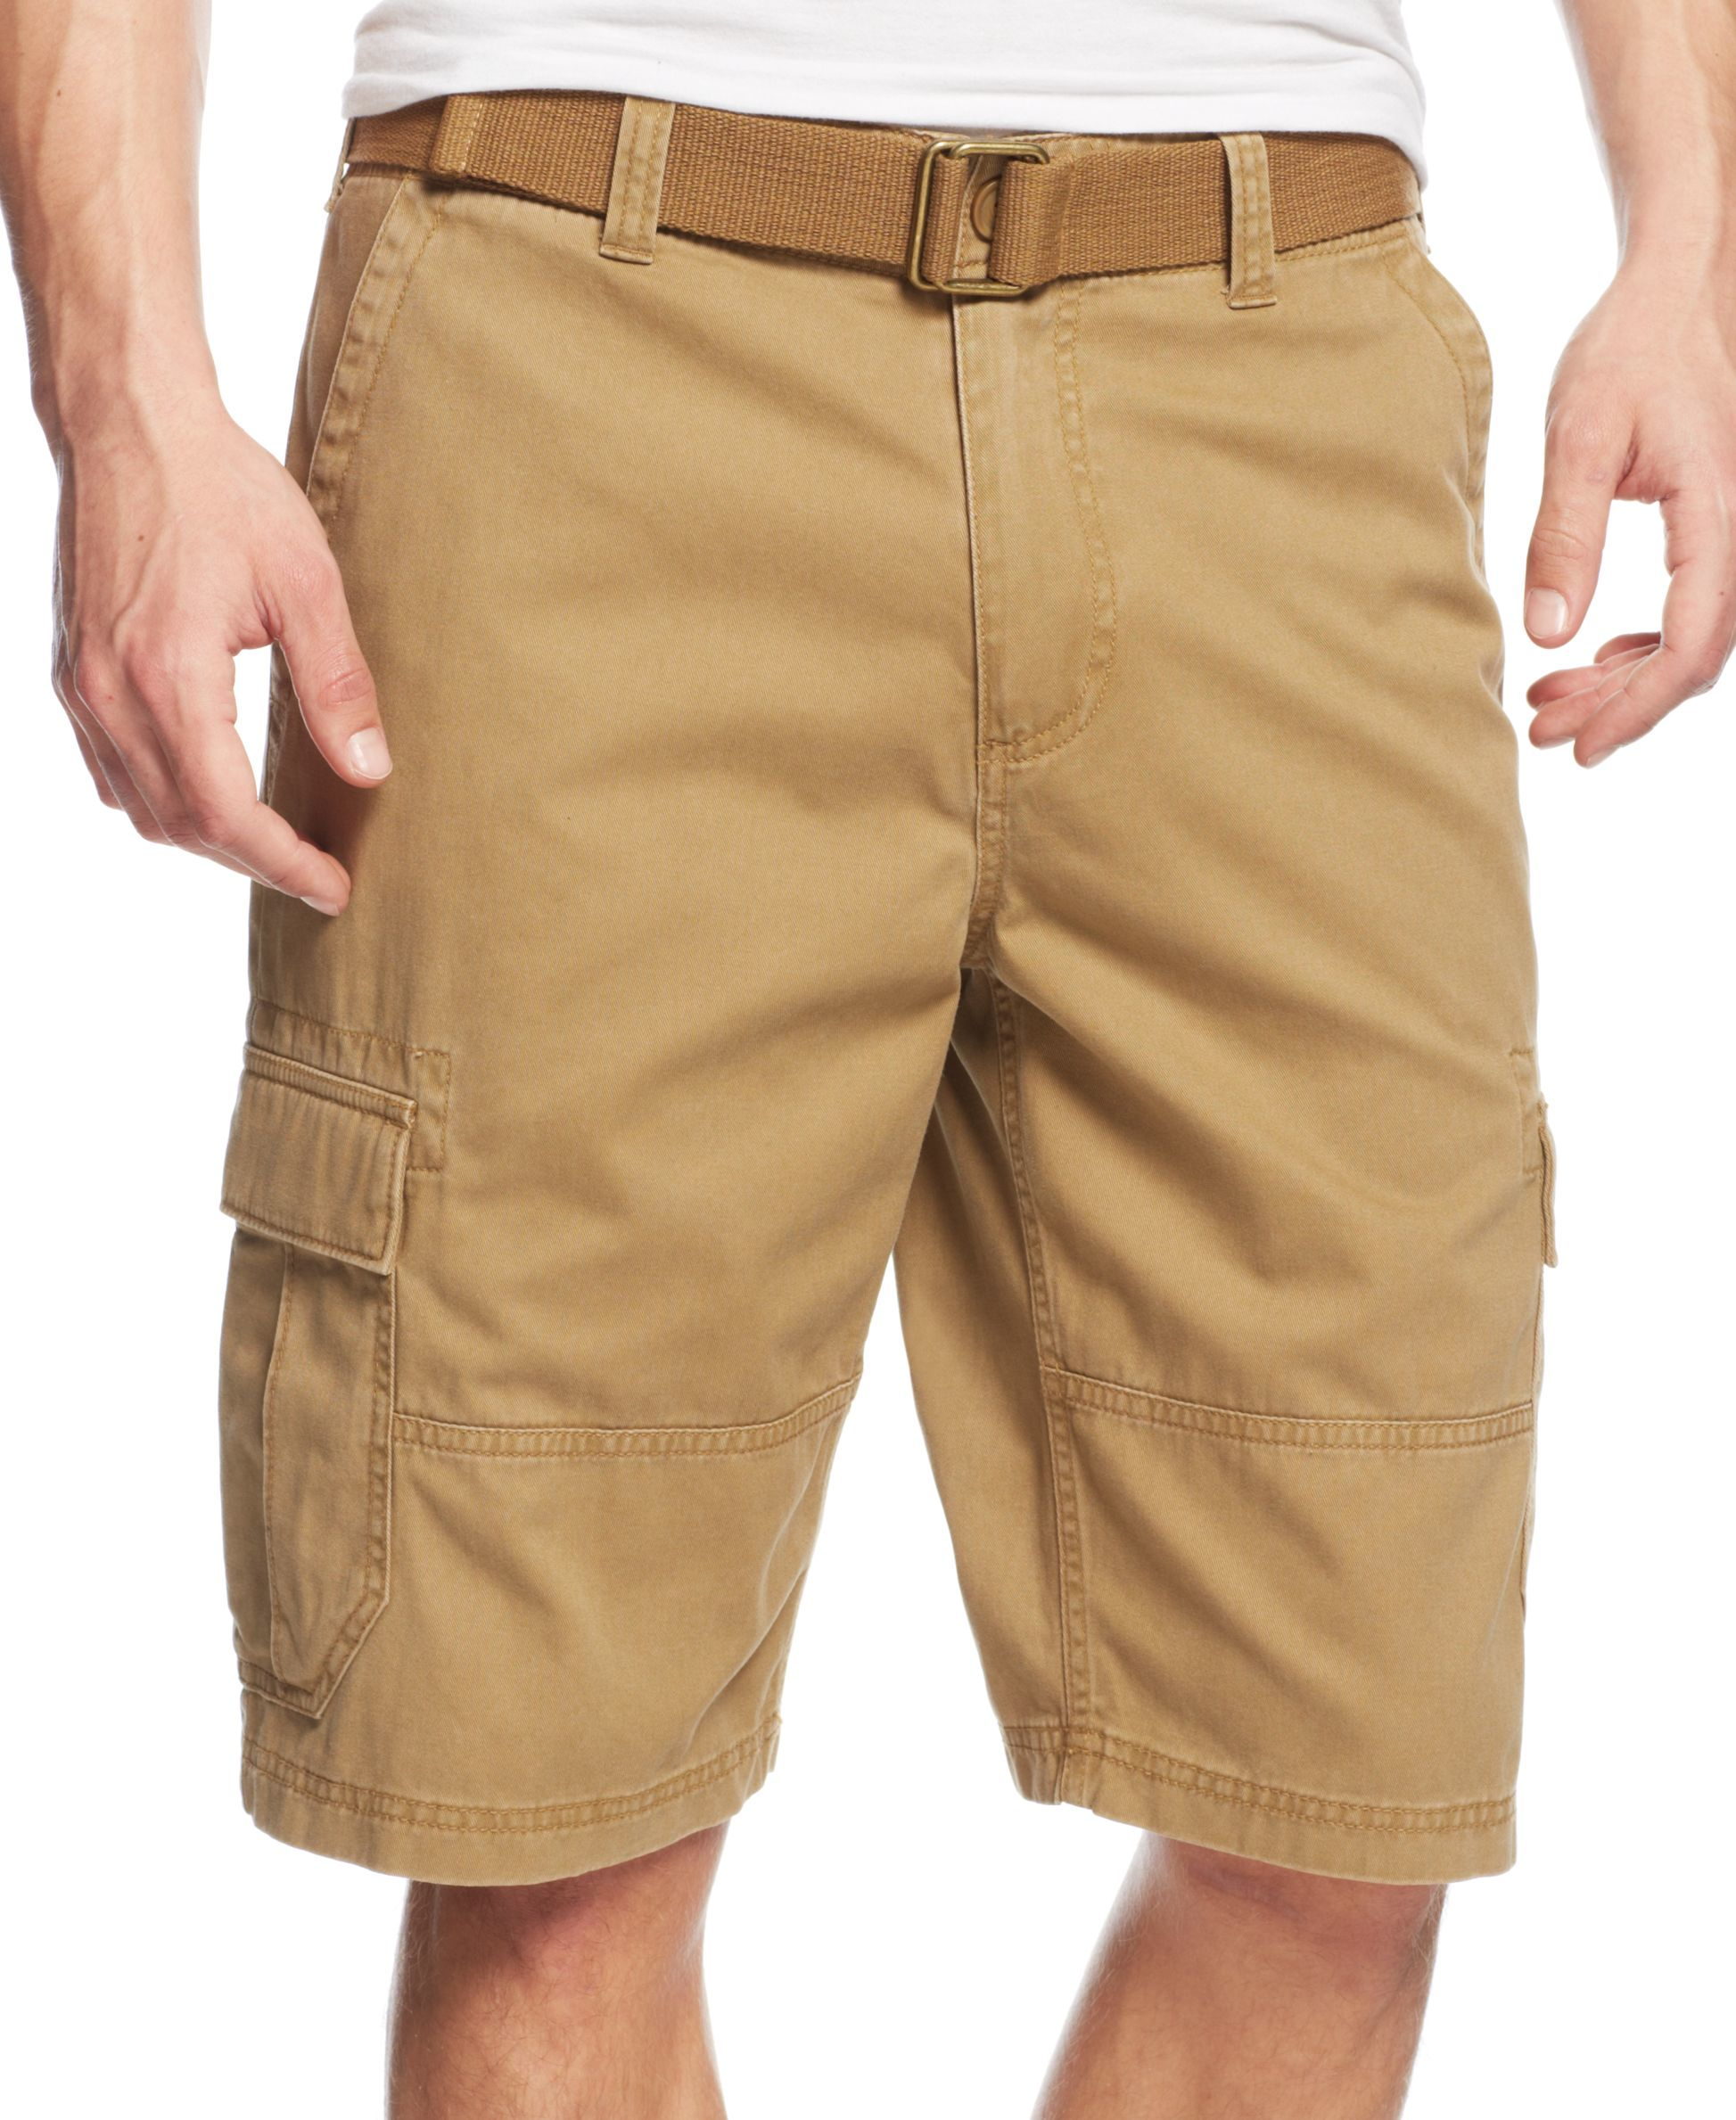 A Man's Guide to Wearing Shorts History Shorts. Their origins are with children and it was part of school prep. That was the only time in their lives they really wore shorts outside of athletic events.